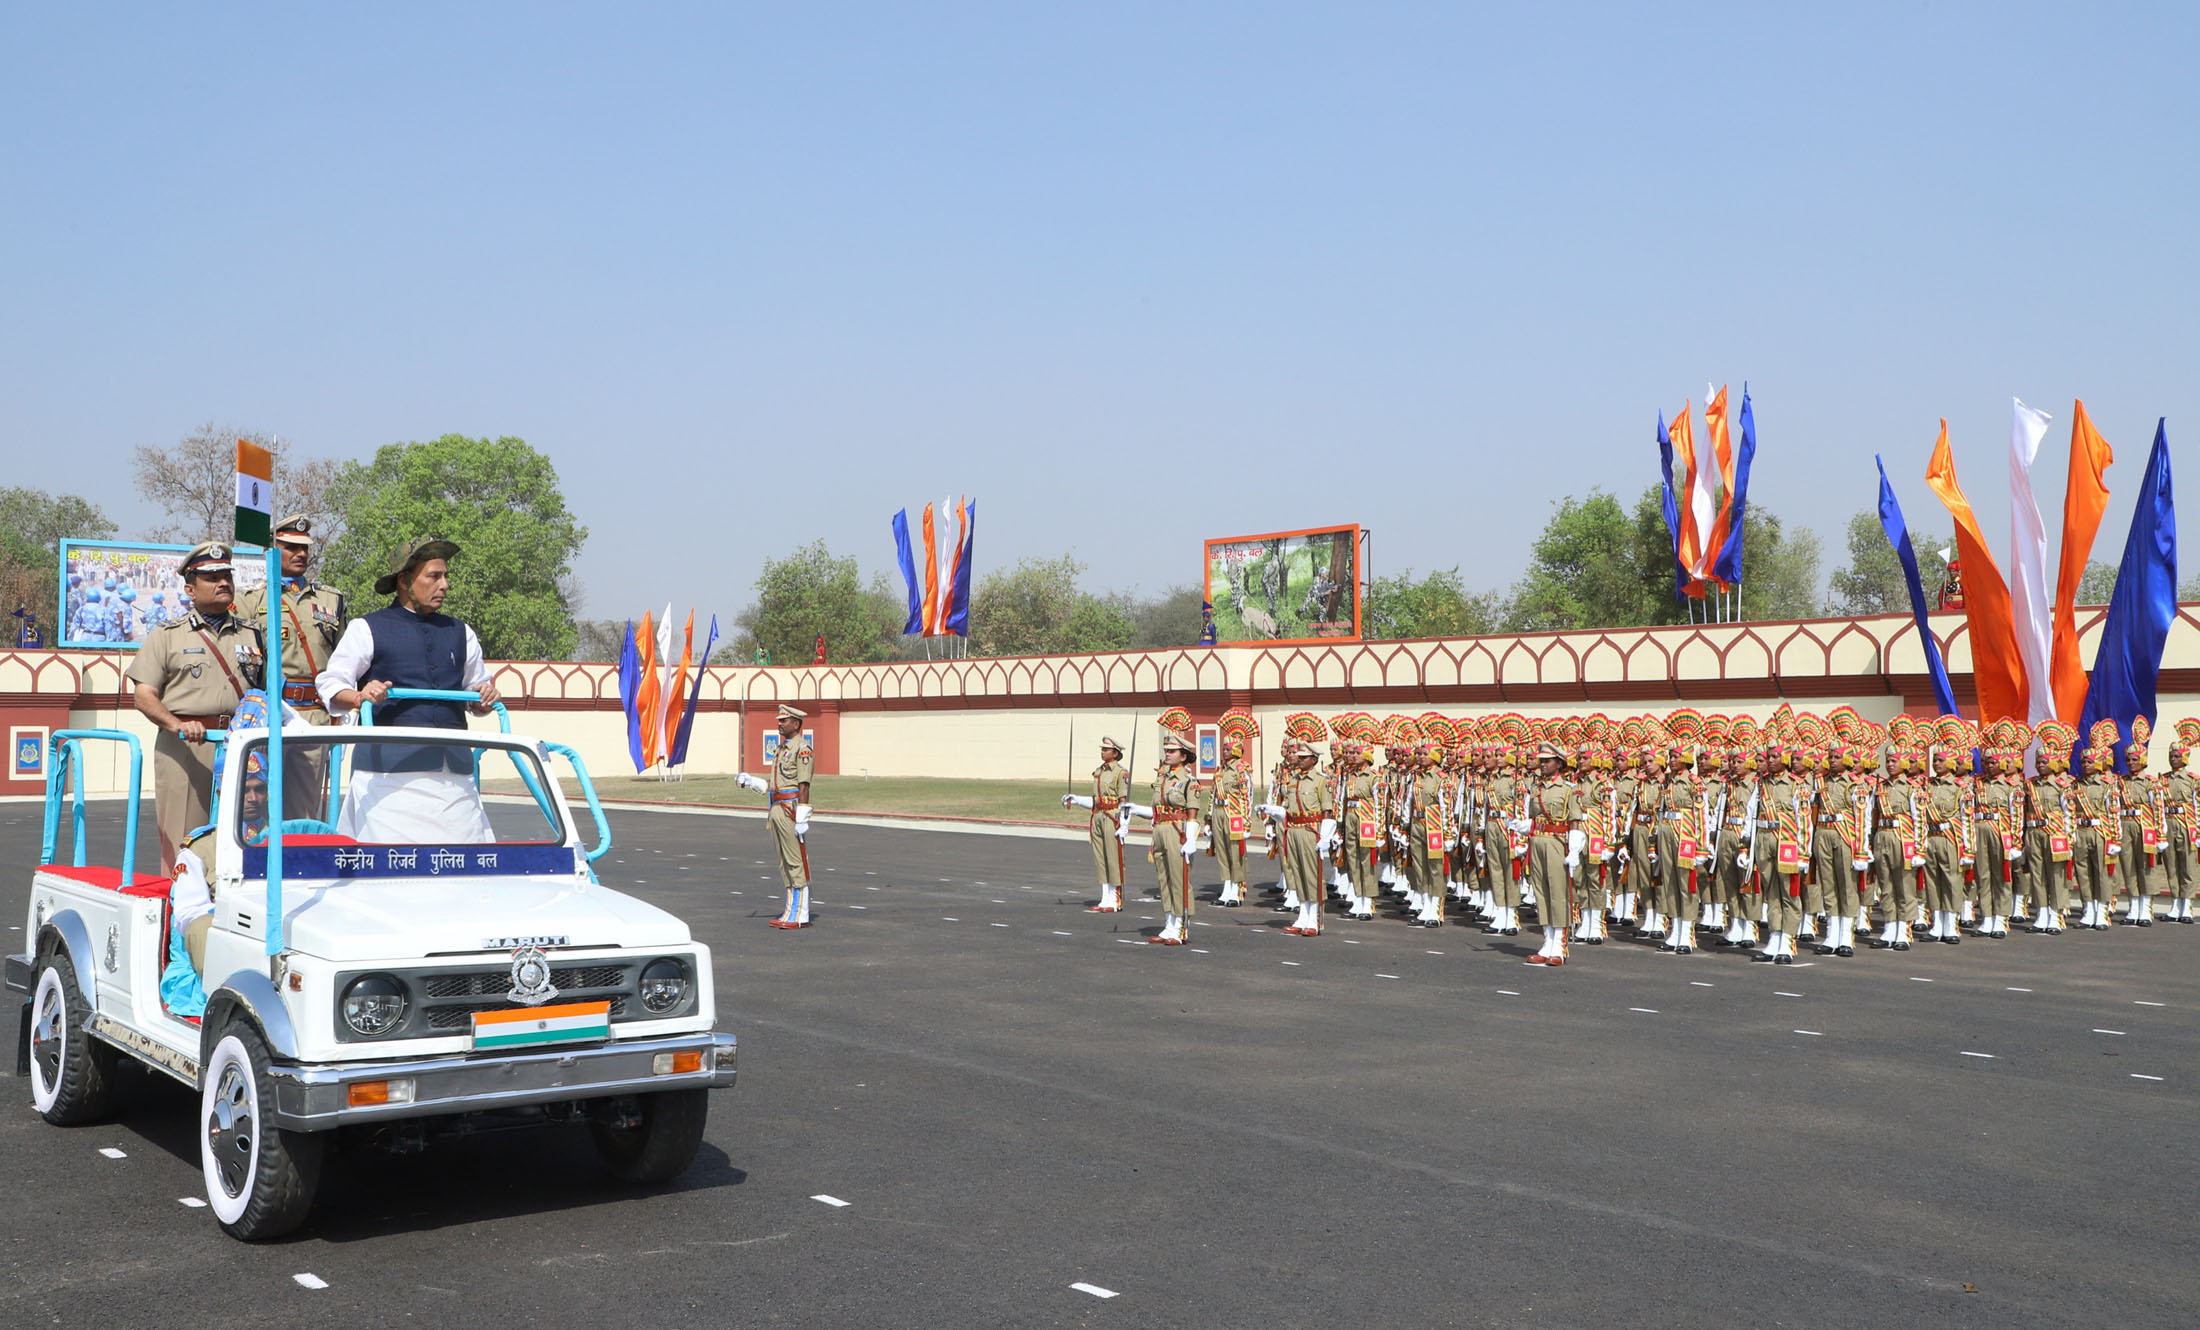 The Union Home Minister, Shri Rajnath Singh inspecting the parade at the CRPF's 79th Raising Day function, in Gurugram, Haryana on March 24, 2018.